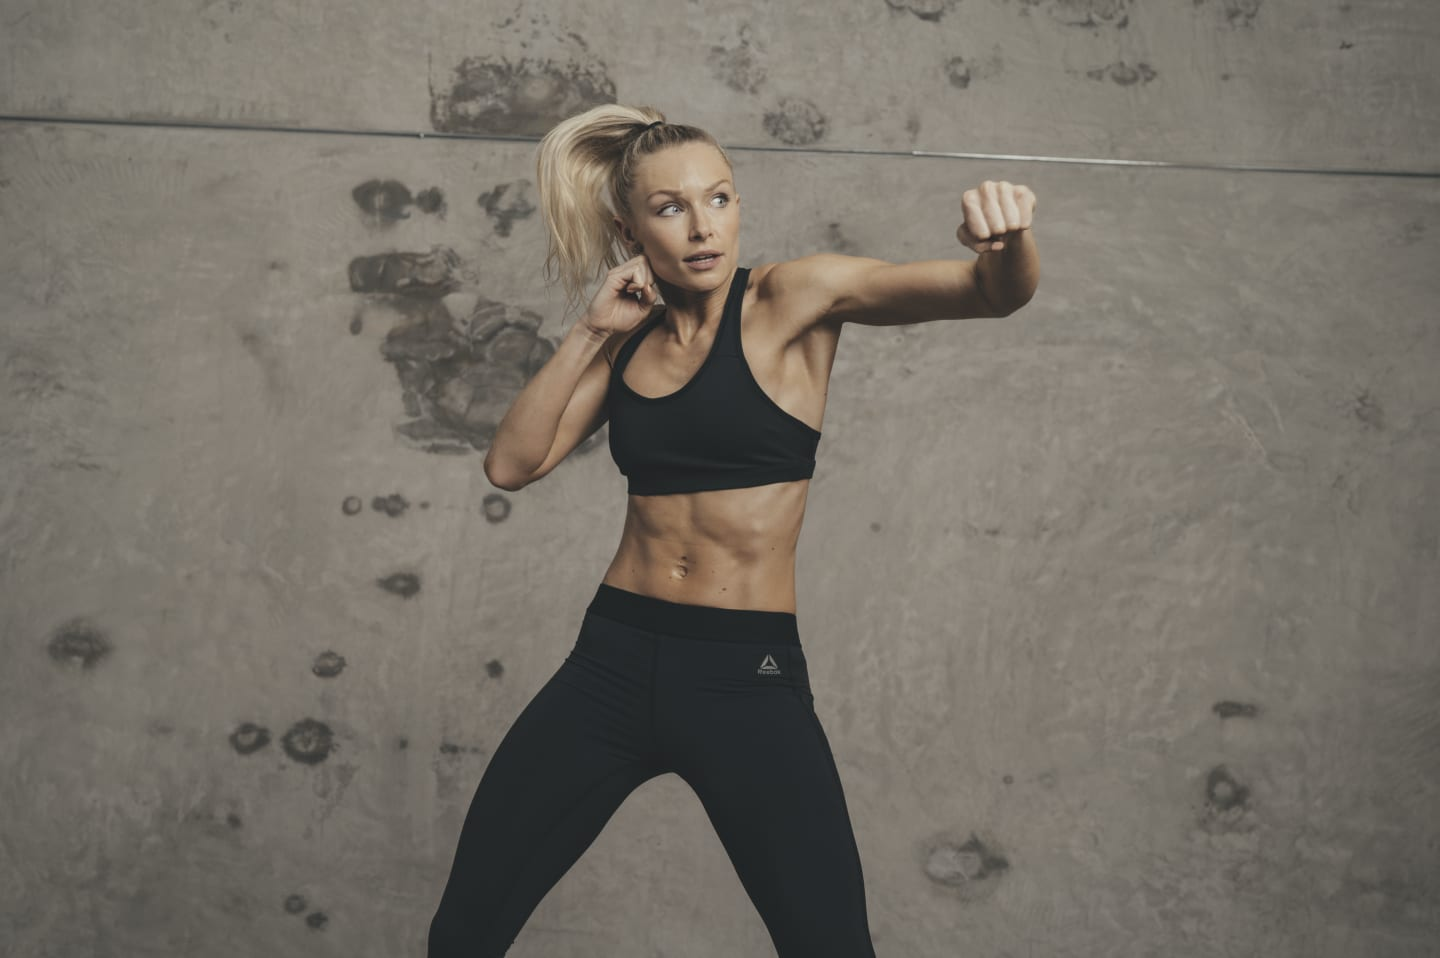 Woman doing shadow boxing in front of a grey wall.Woman-Fitness Boxing-class, GamePlan A, adidas